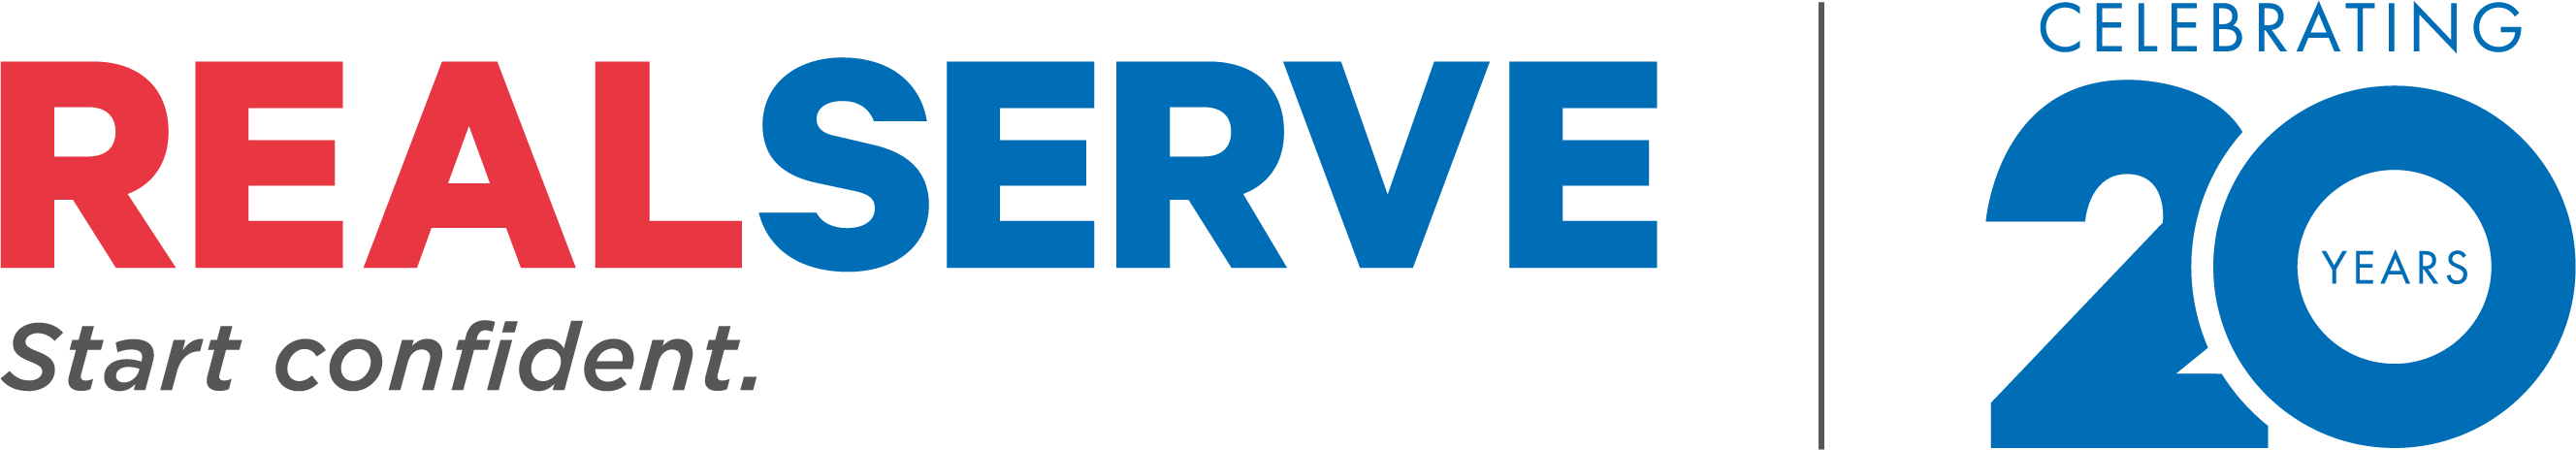 Realserve Pty Ltd Australian Property Surveys and Measurement Logo